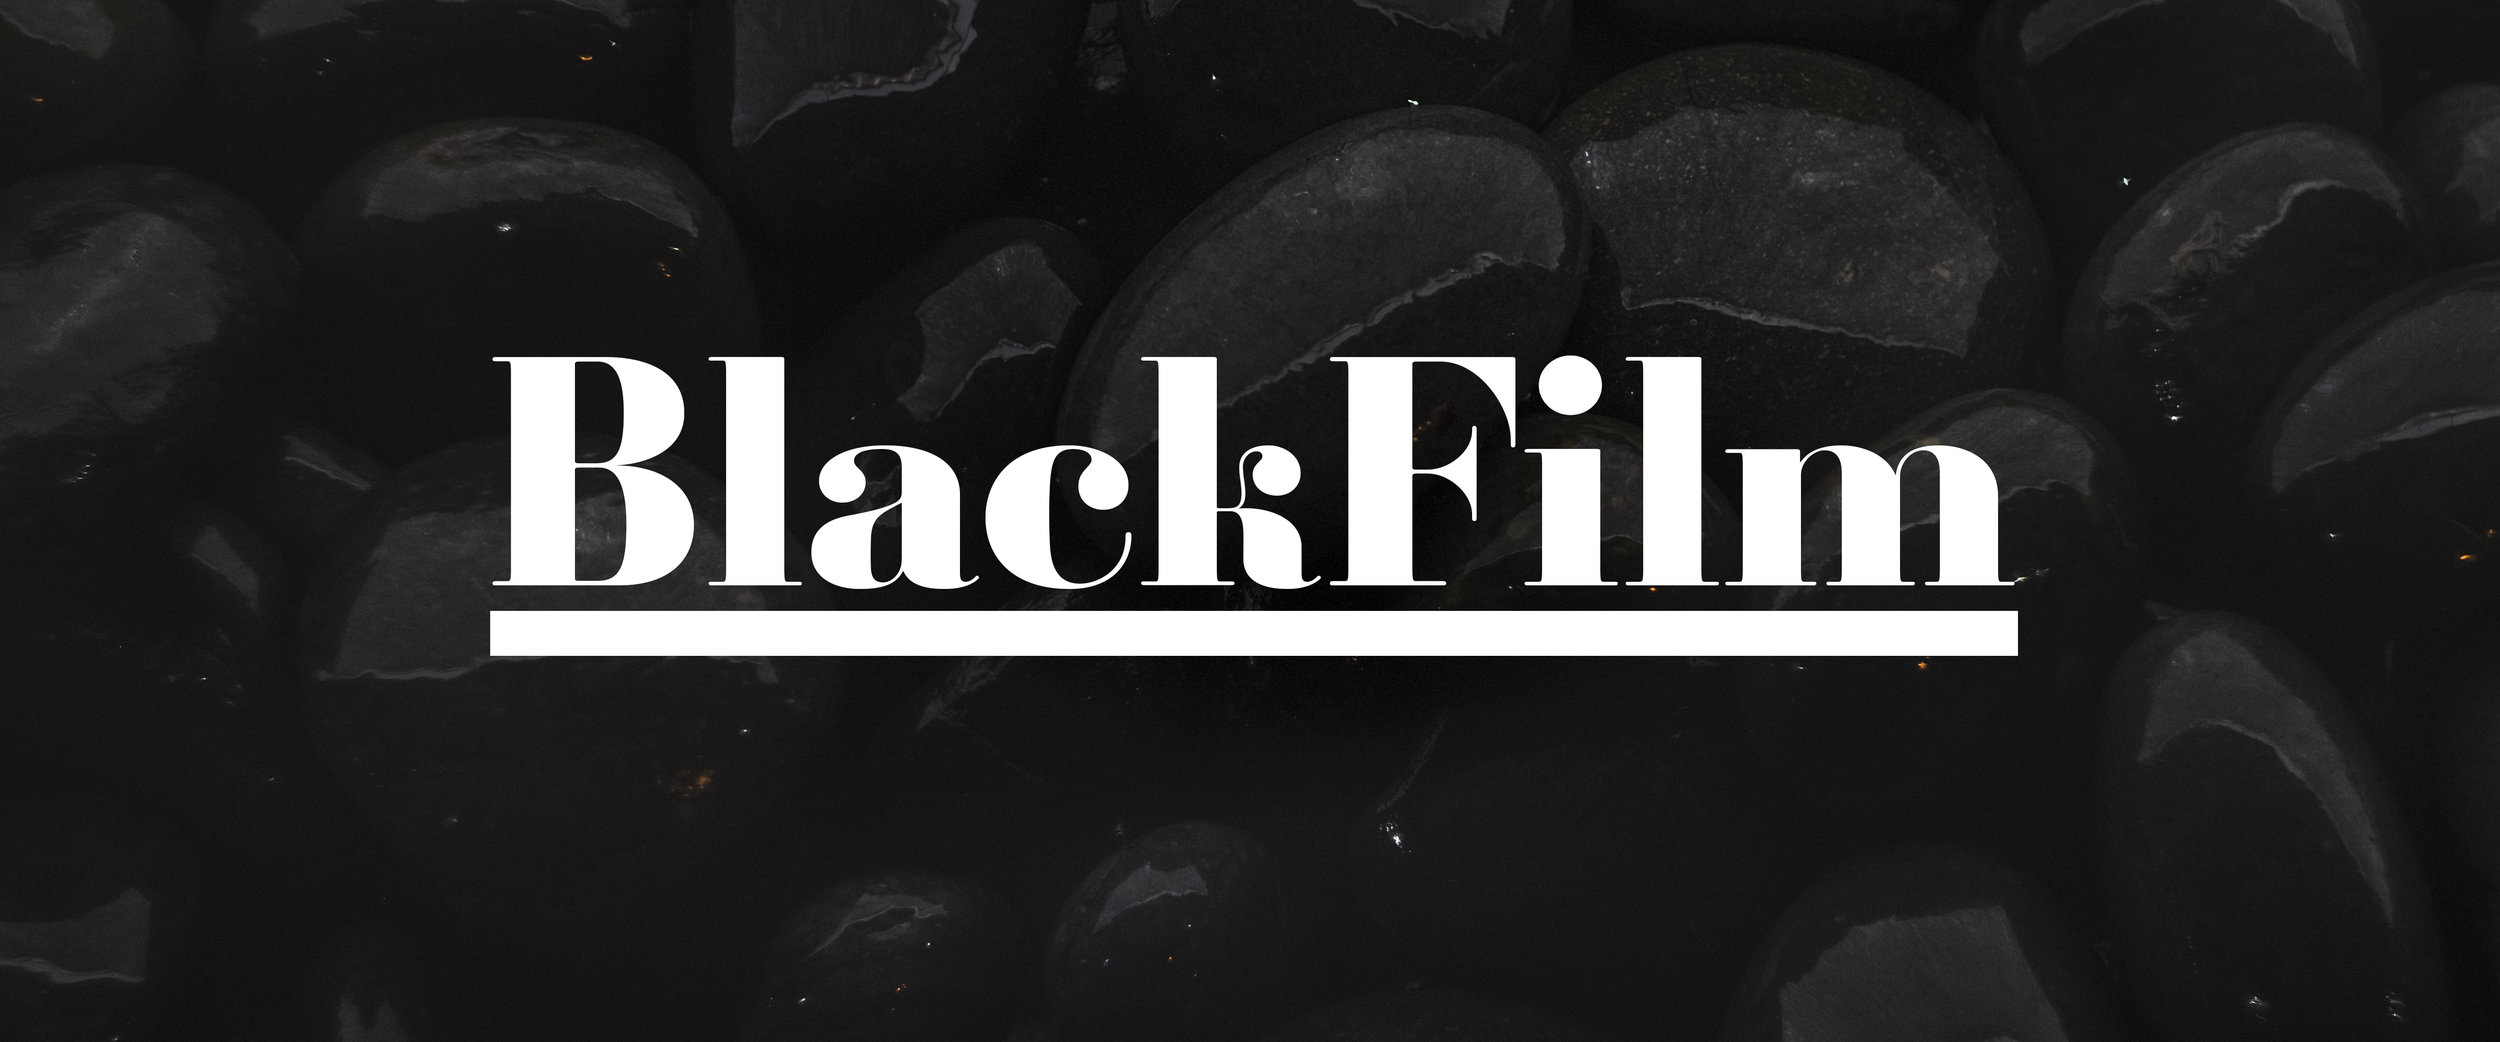 BlackFilm : Photography - BlackFilm photography is a start up agency that consist of young visionary photographers and artist. It was founded in Los Angeles California in November 6 2016. The mission goal is to provide high quality work that can stand strong in the comercial world and also have a poetic feel to the image.